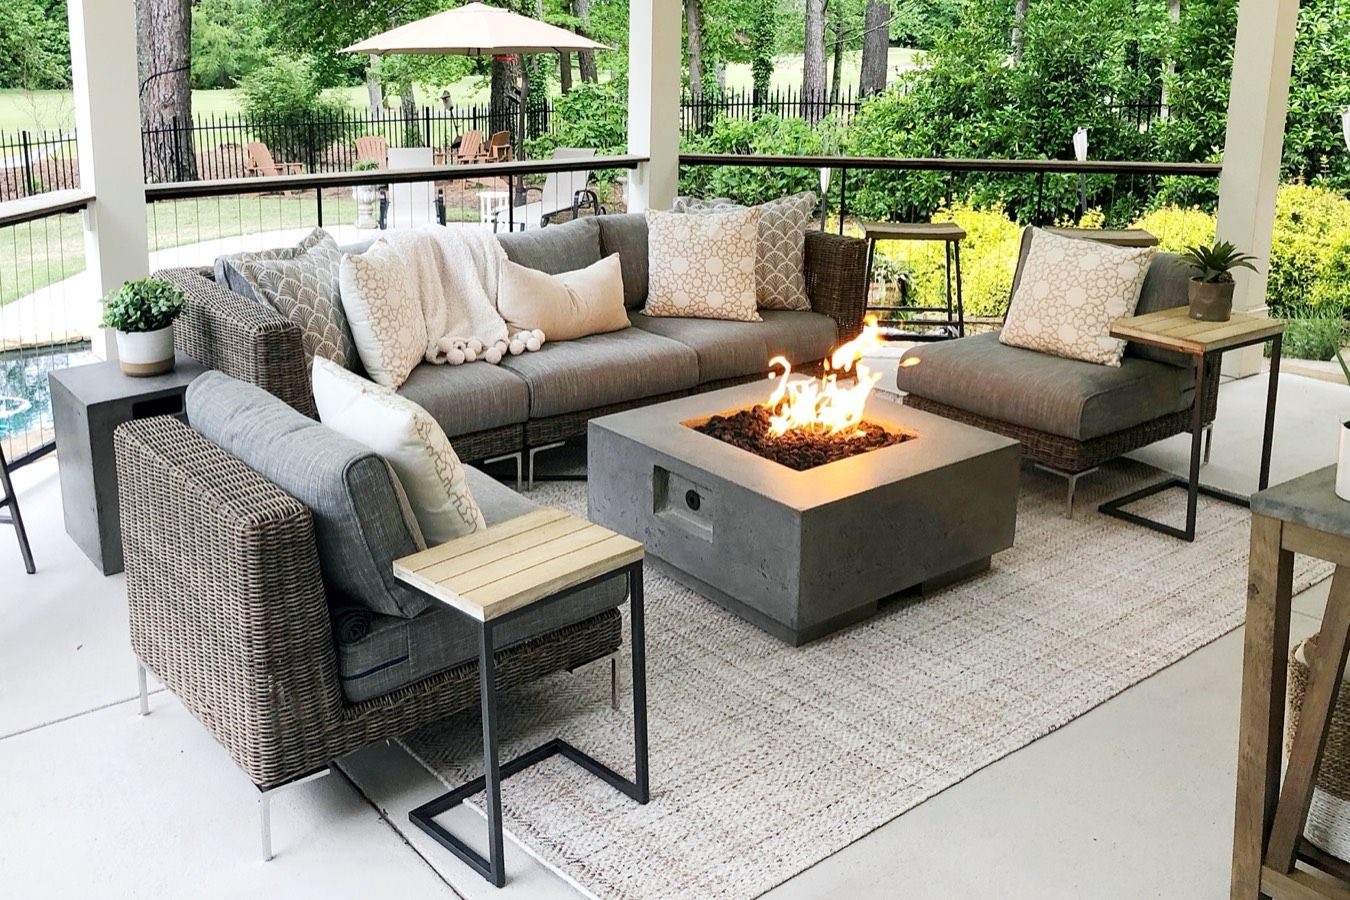 Timeless style outdoor sofa and fire pit